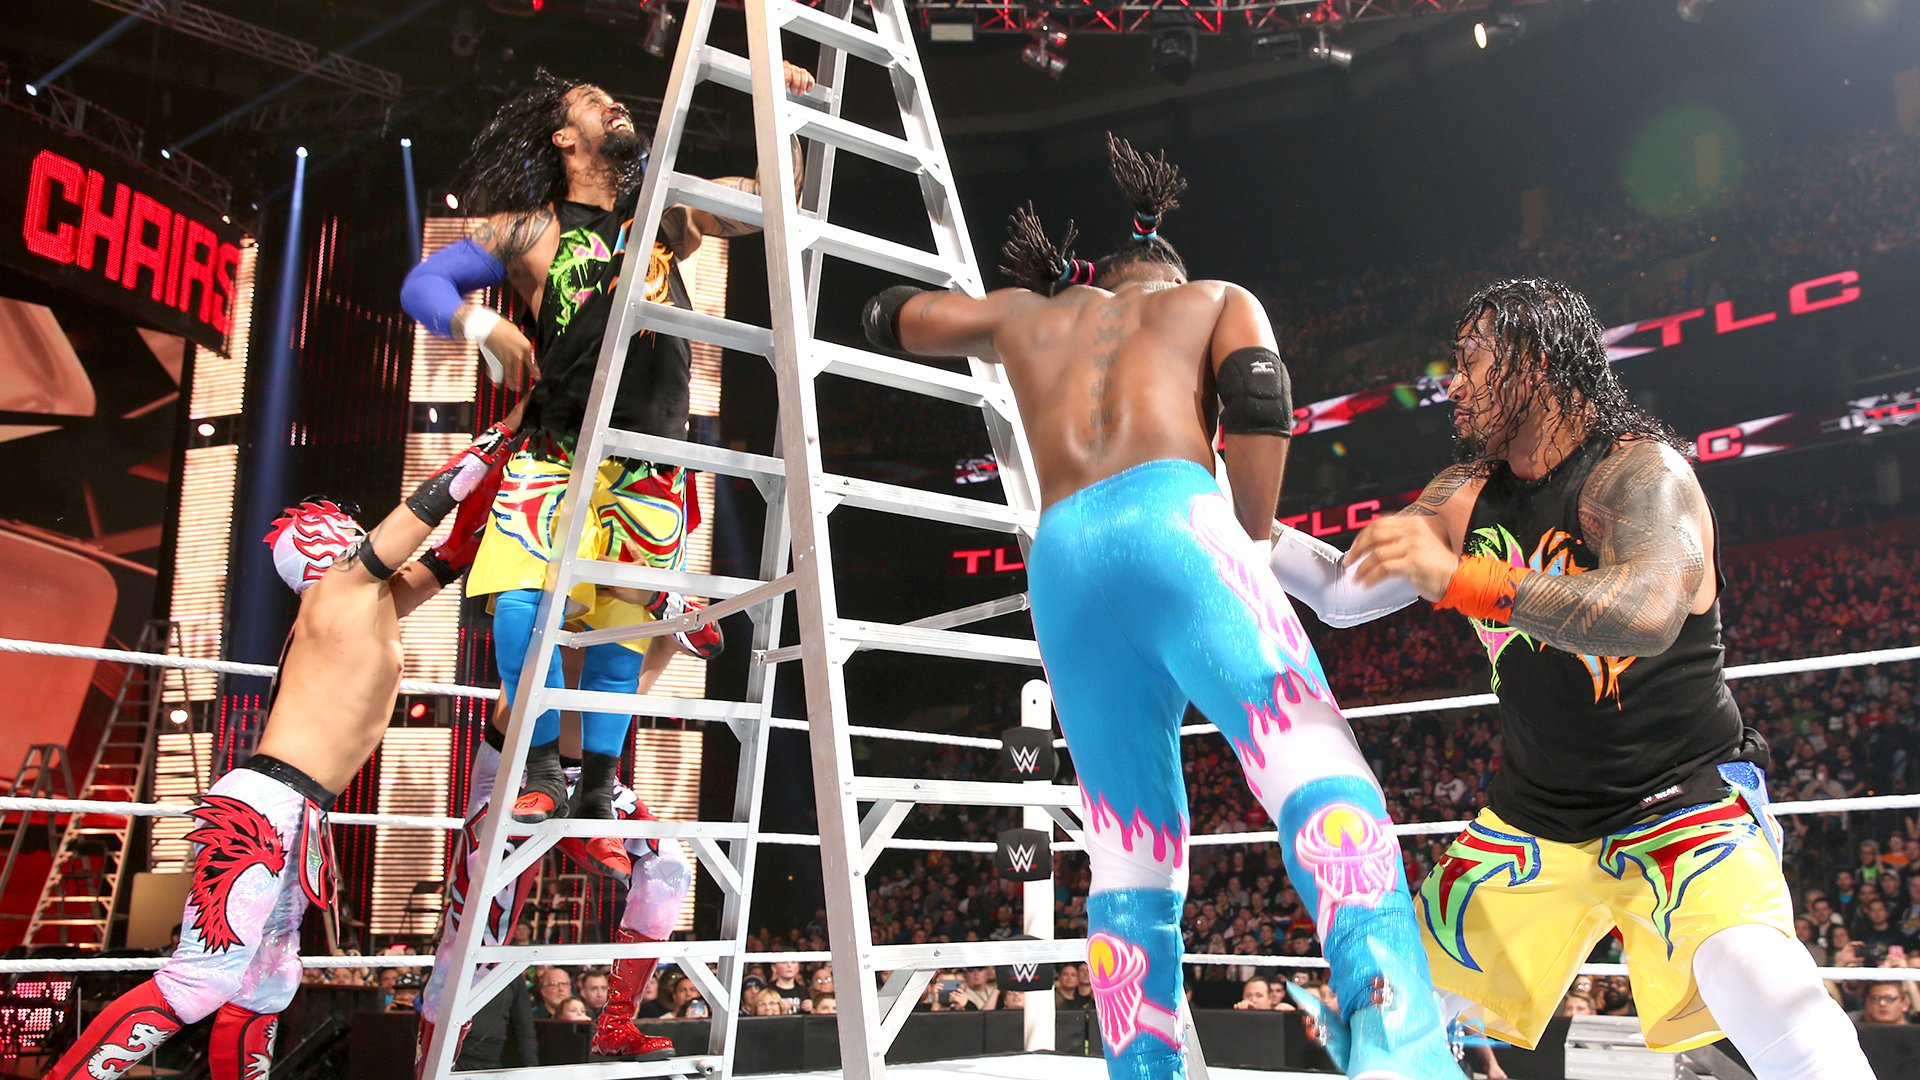 All of the Superstars in this bout frantically scramble to scale the ladder in the early goings.